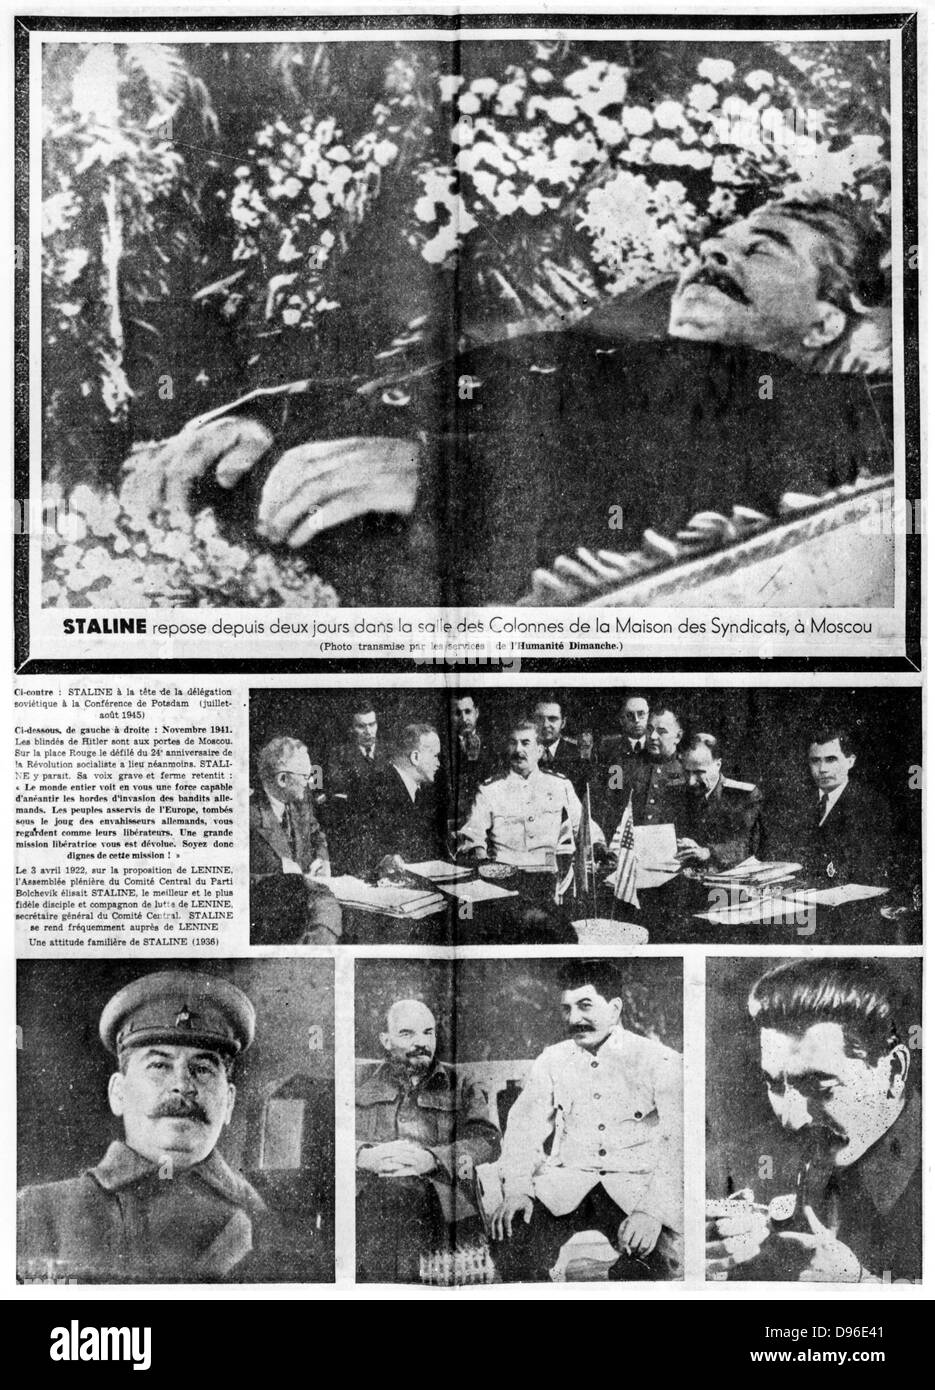 Spread of 'l'Humanite', Paris, 7 March 1953 reporting on the death of Joseph Stalin (1879-1953) Russian - Stock Image